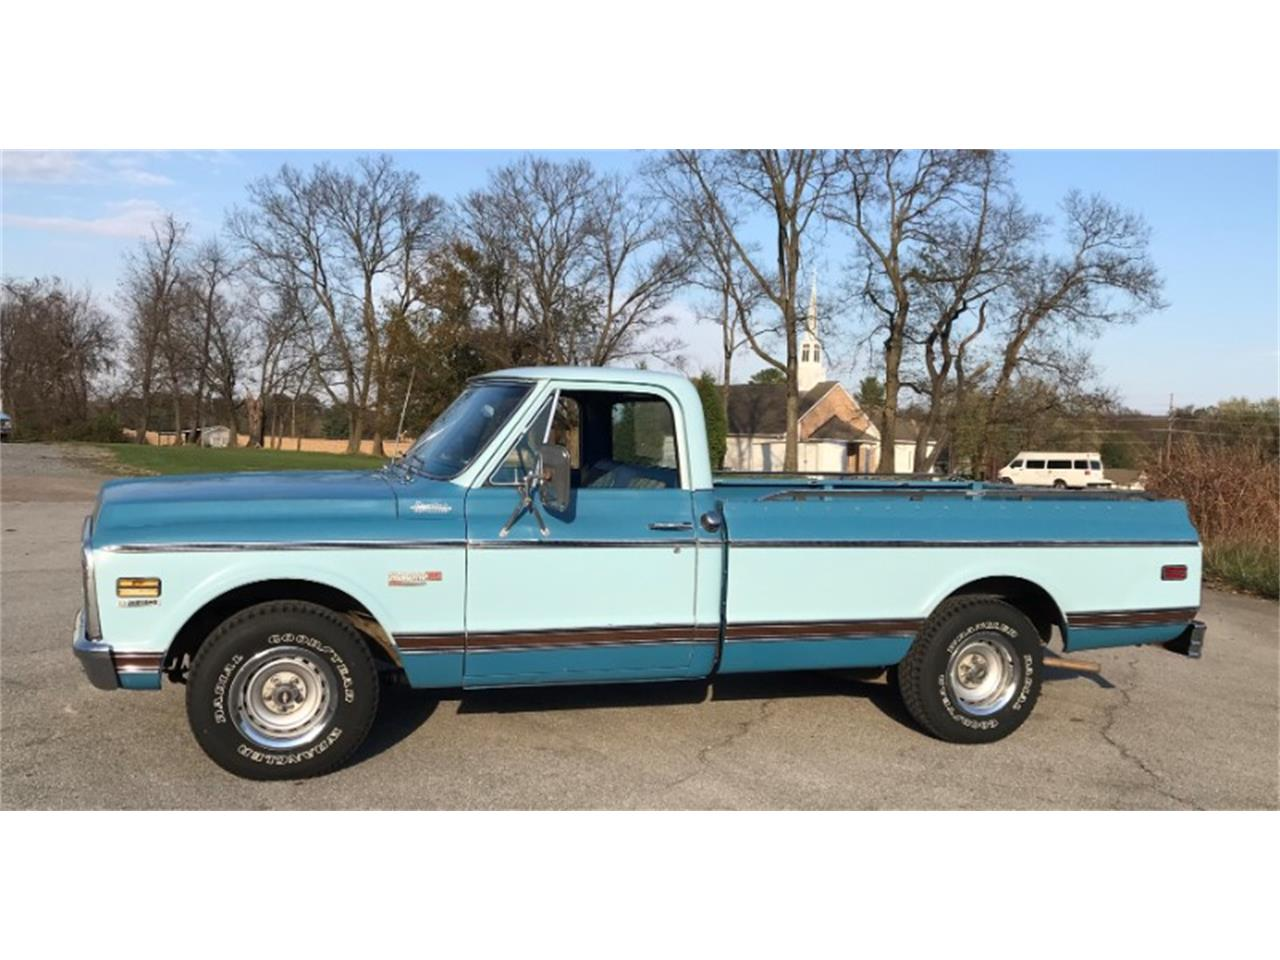 1972 Chevrolet Cheyenne (CC-1270092) for sale in Harpers Ferry, West Virginia